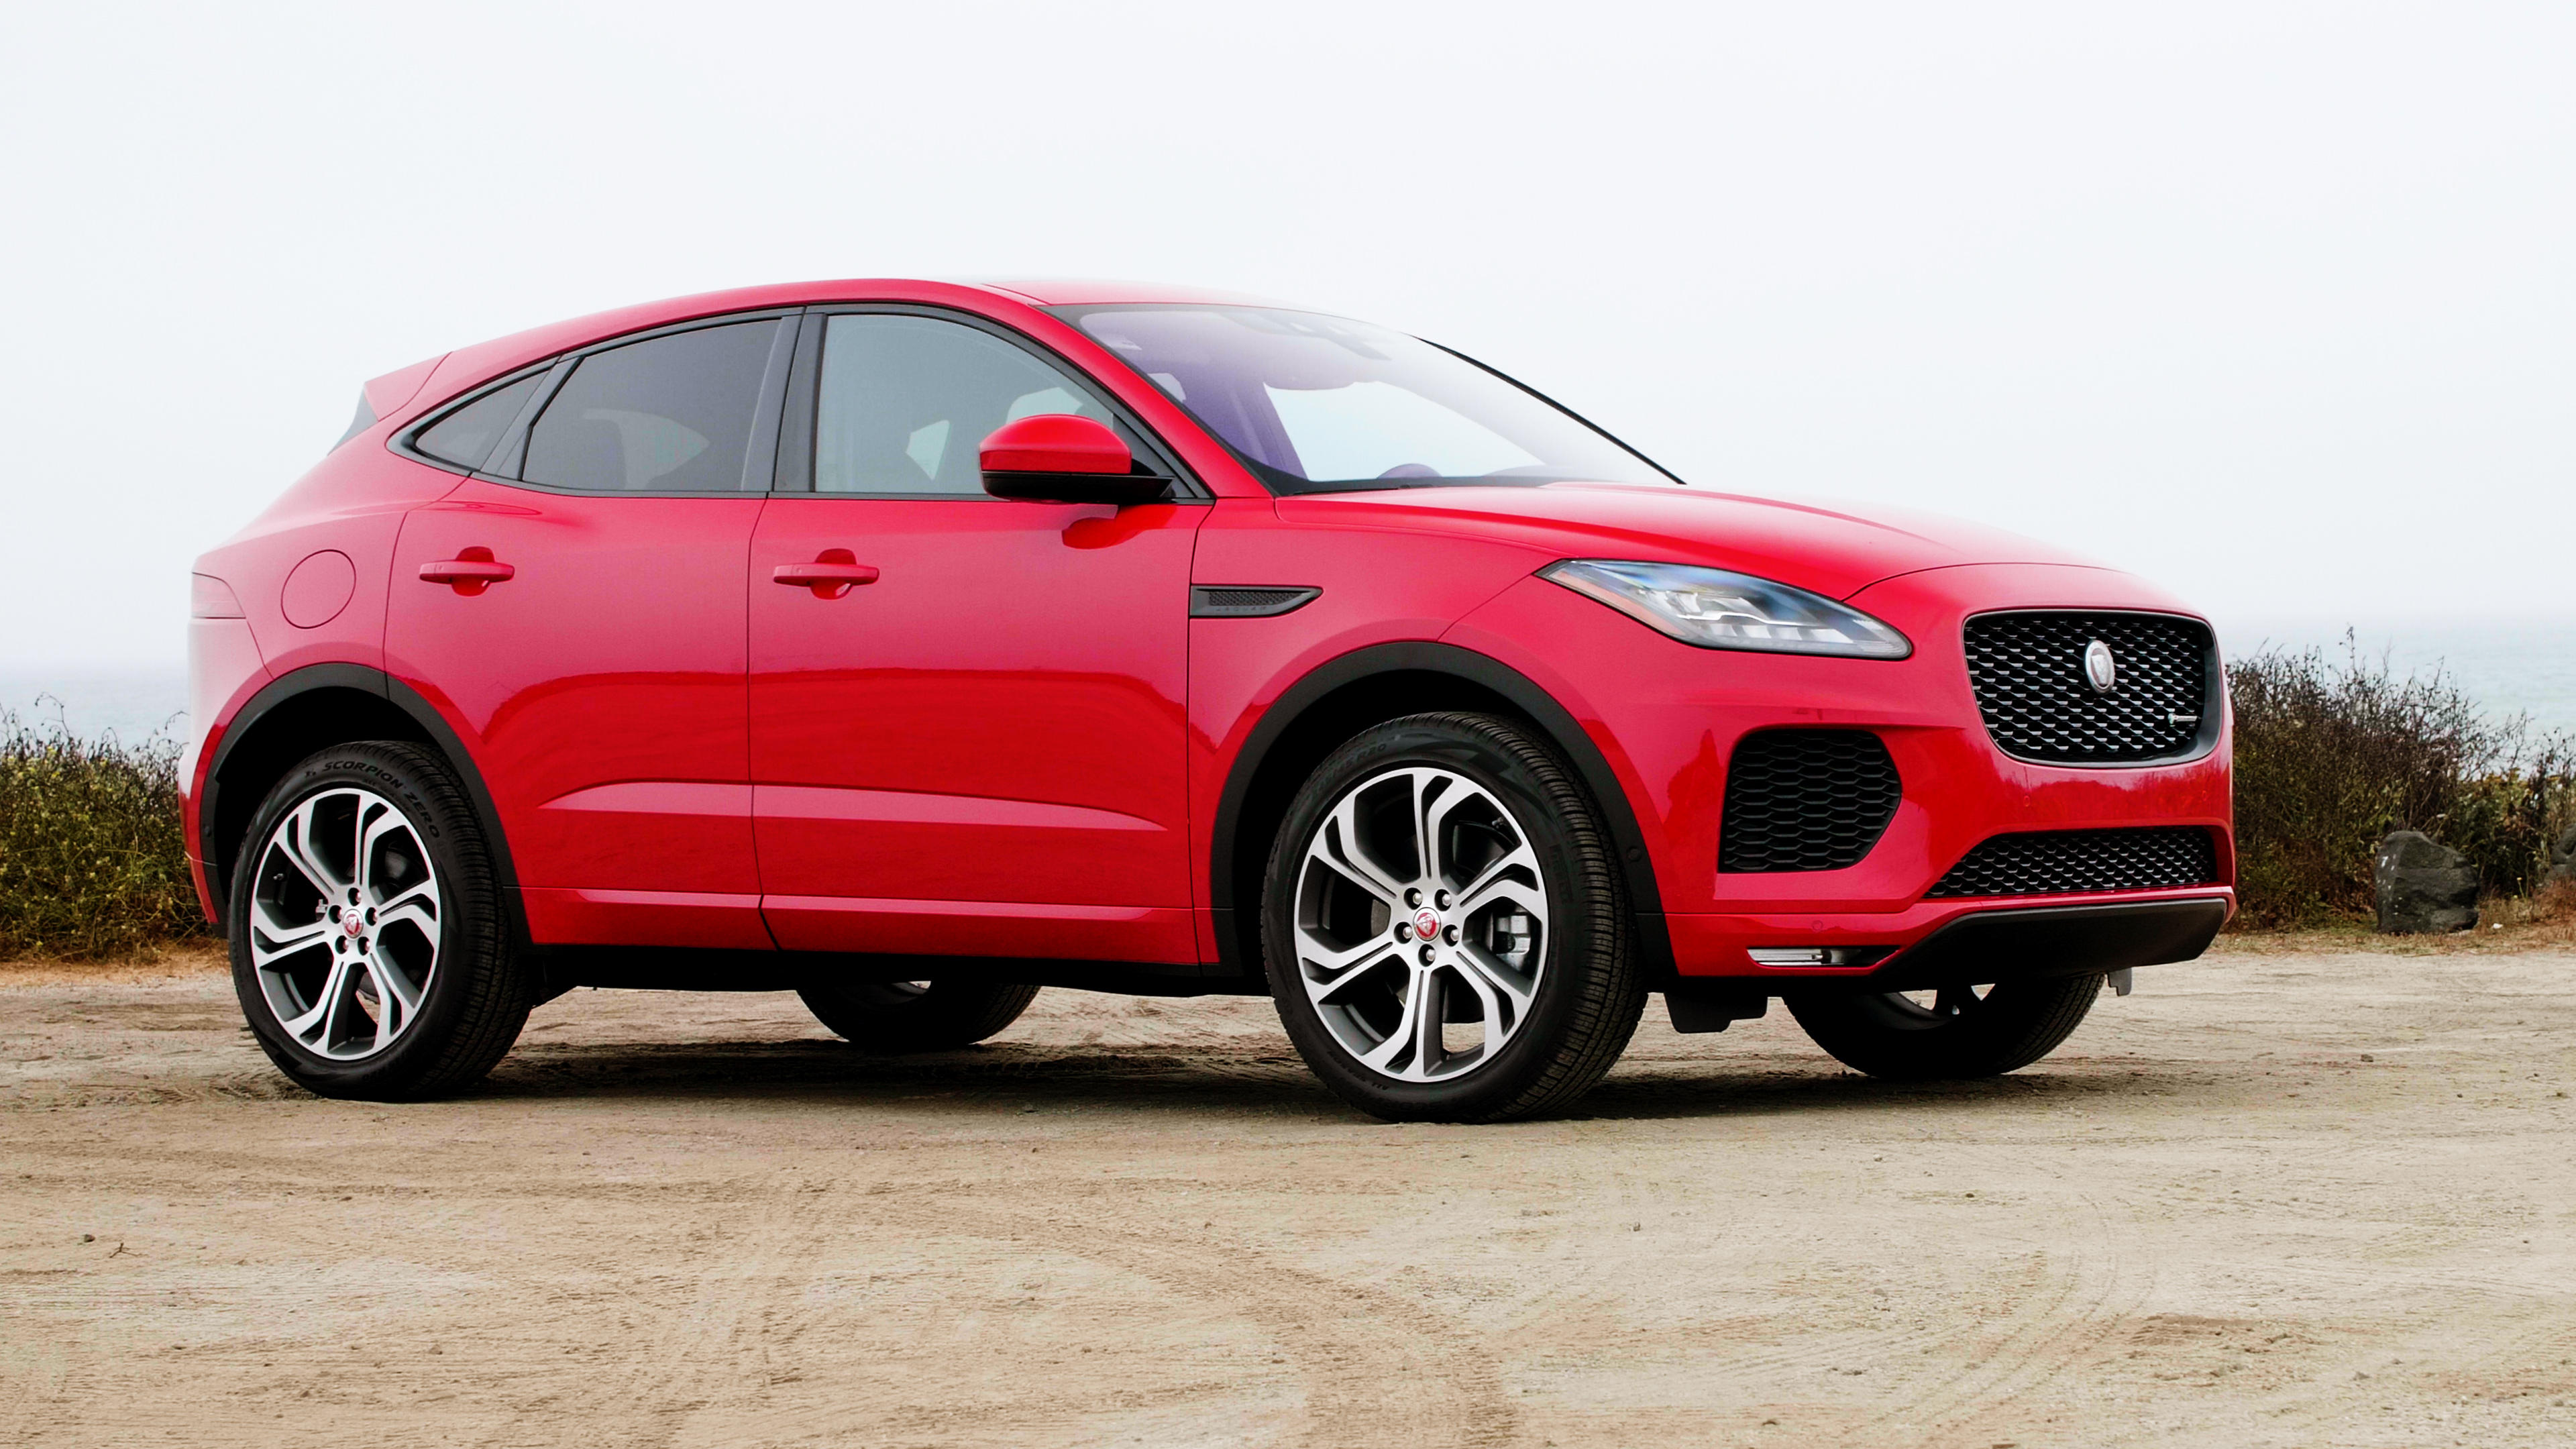 Video: 2018 Jaguar E-Pace: The fast and the frustrating